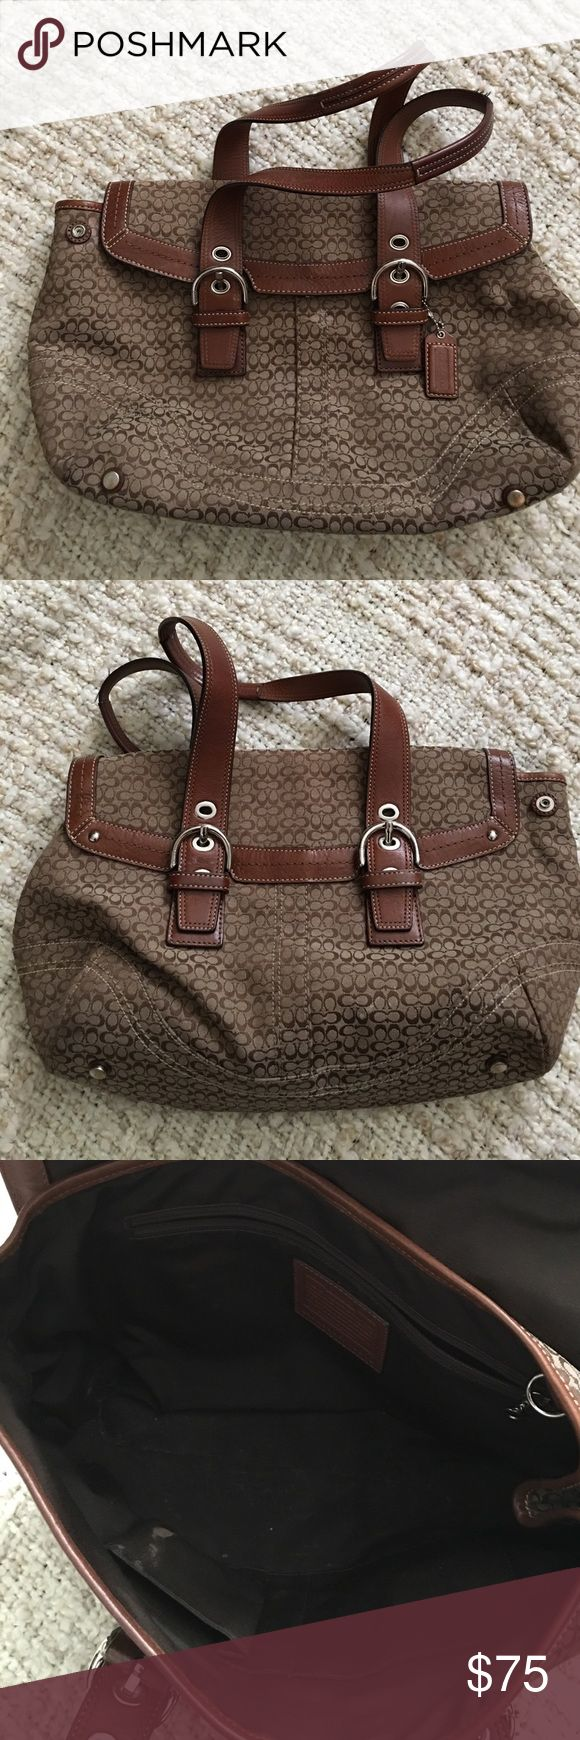 Coach purse signature flap back handbag Authentic Coach purse in good condition. The bag def has signs of wear, not too bad though. The straps are i great condition with just a tad of fraying, the interior is a bit spotty but that can be cleaned up. Dimensions are 15x10x4 Coach Bags Shoulder Bags